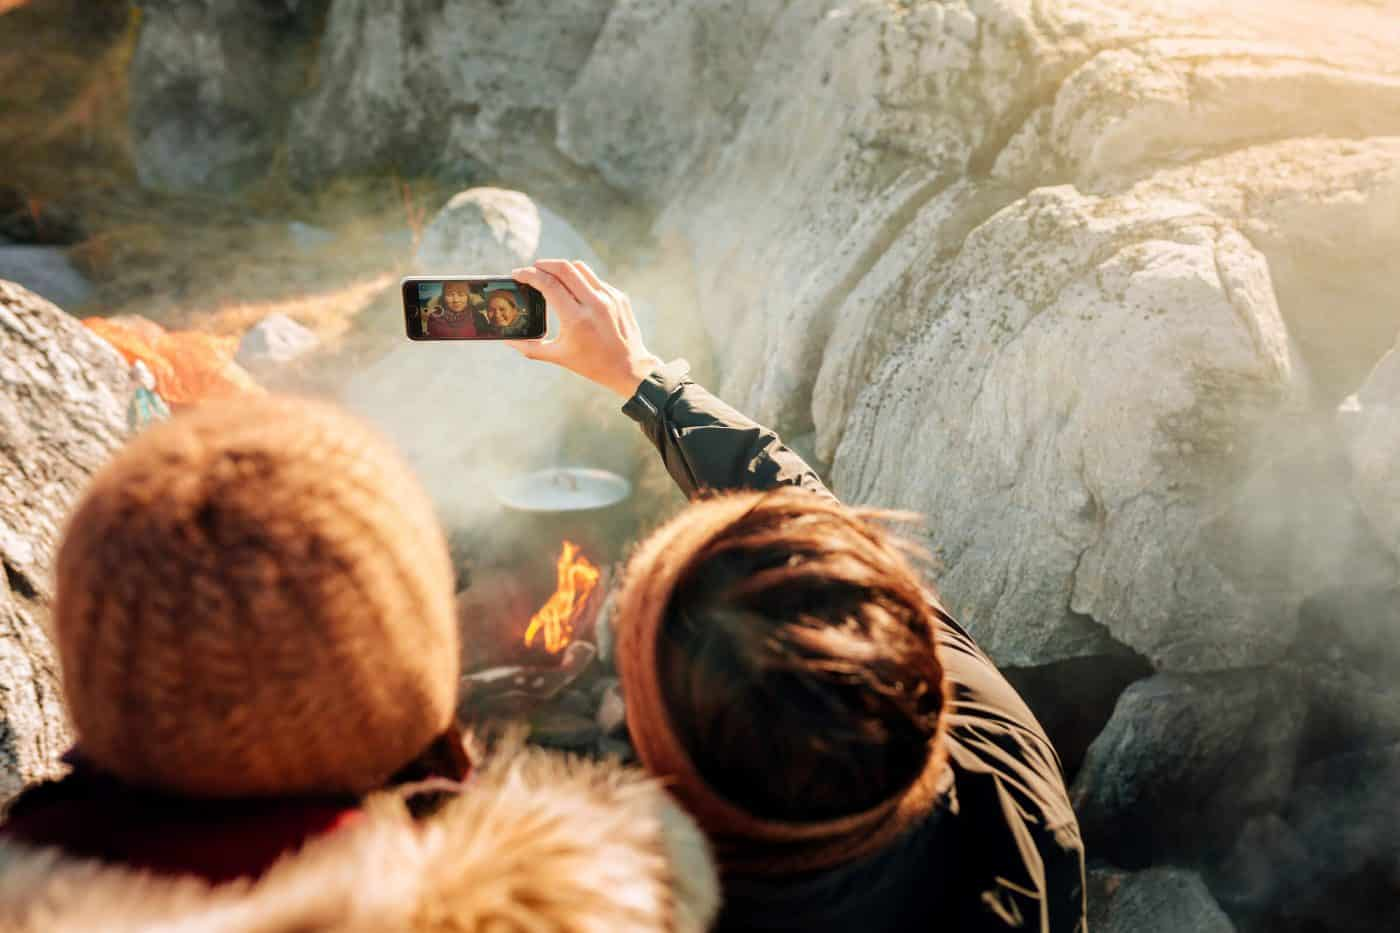 Two women taking a selfie by the fire on the beach in Nuuk in Greenland. By Rebecca Gustafsson